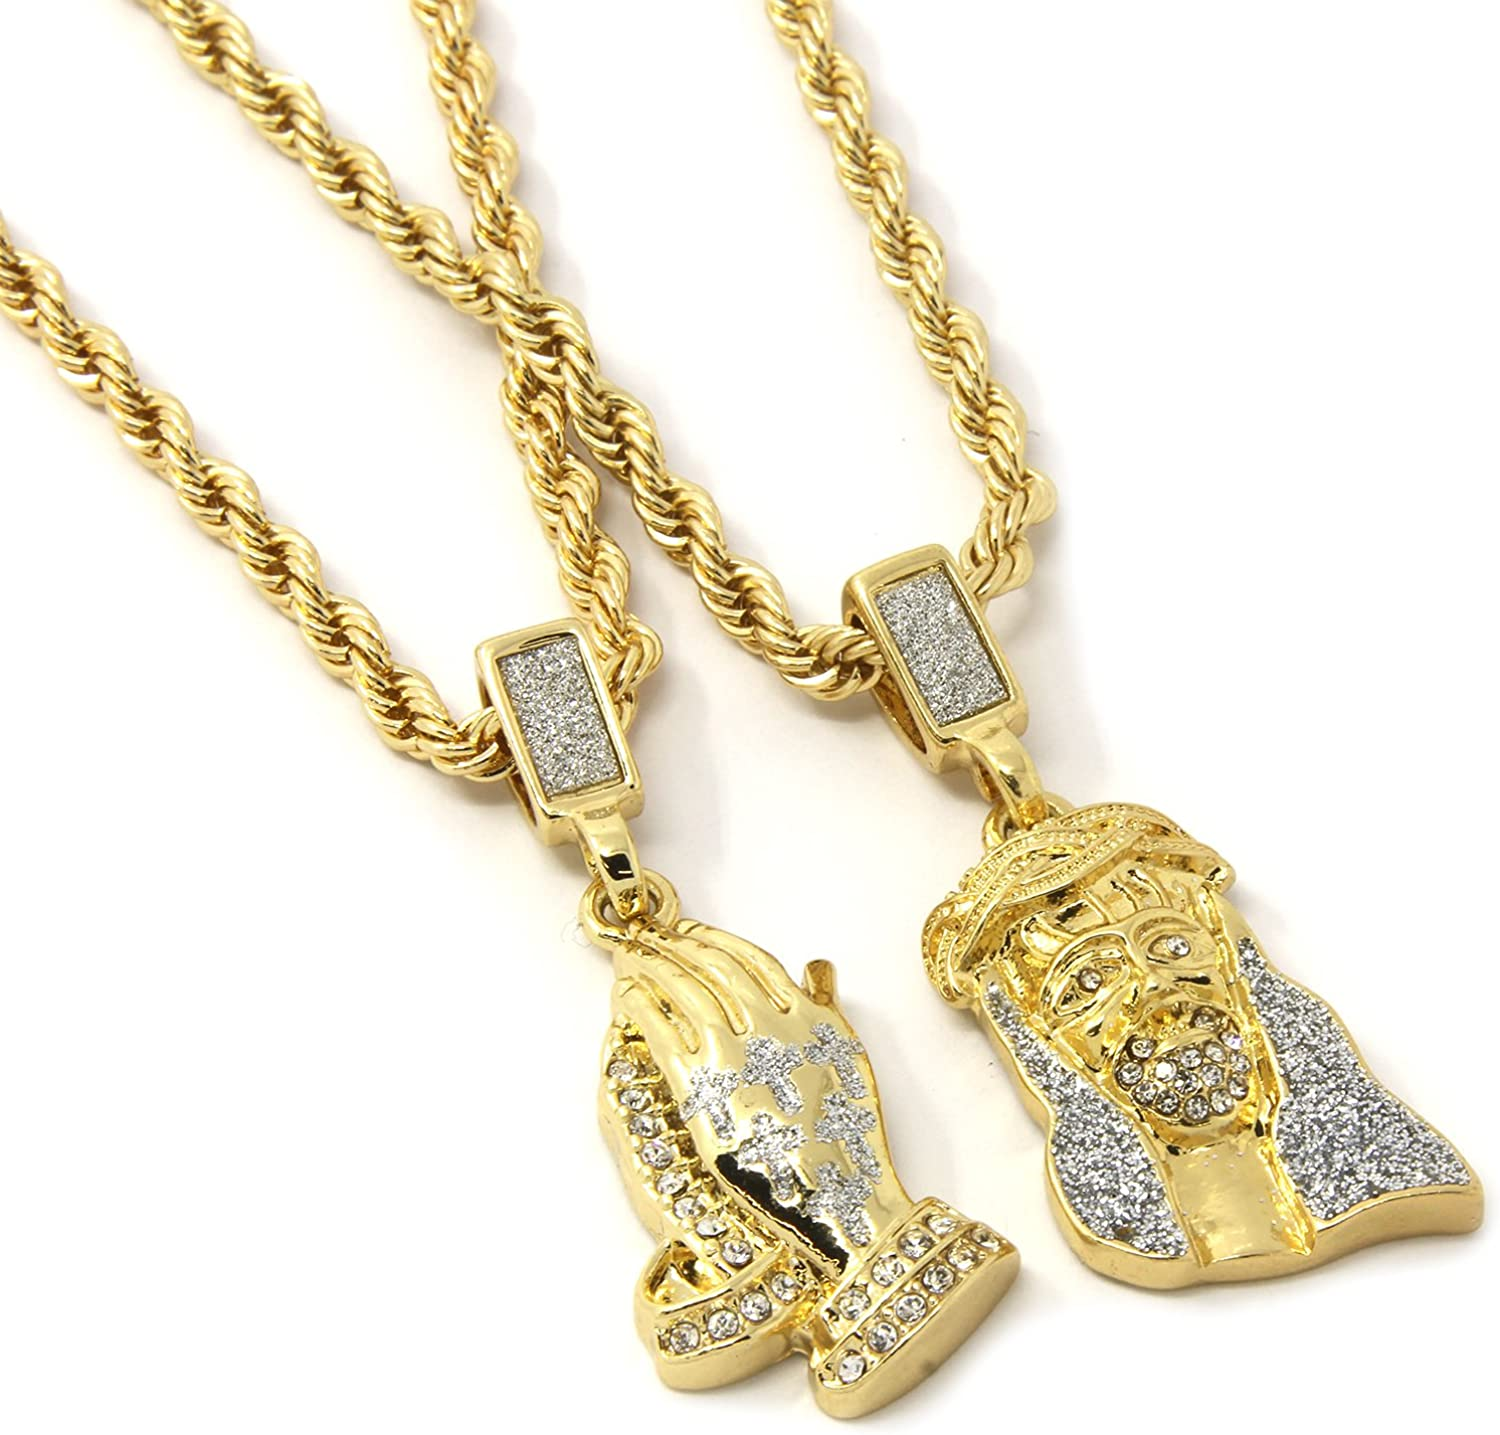 HN Jewels Prayer Hands Disc Pendant Necklace 14K White Gold Plated 1.2 Ct Round Cut Simulated Diamonds